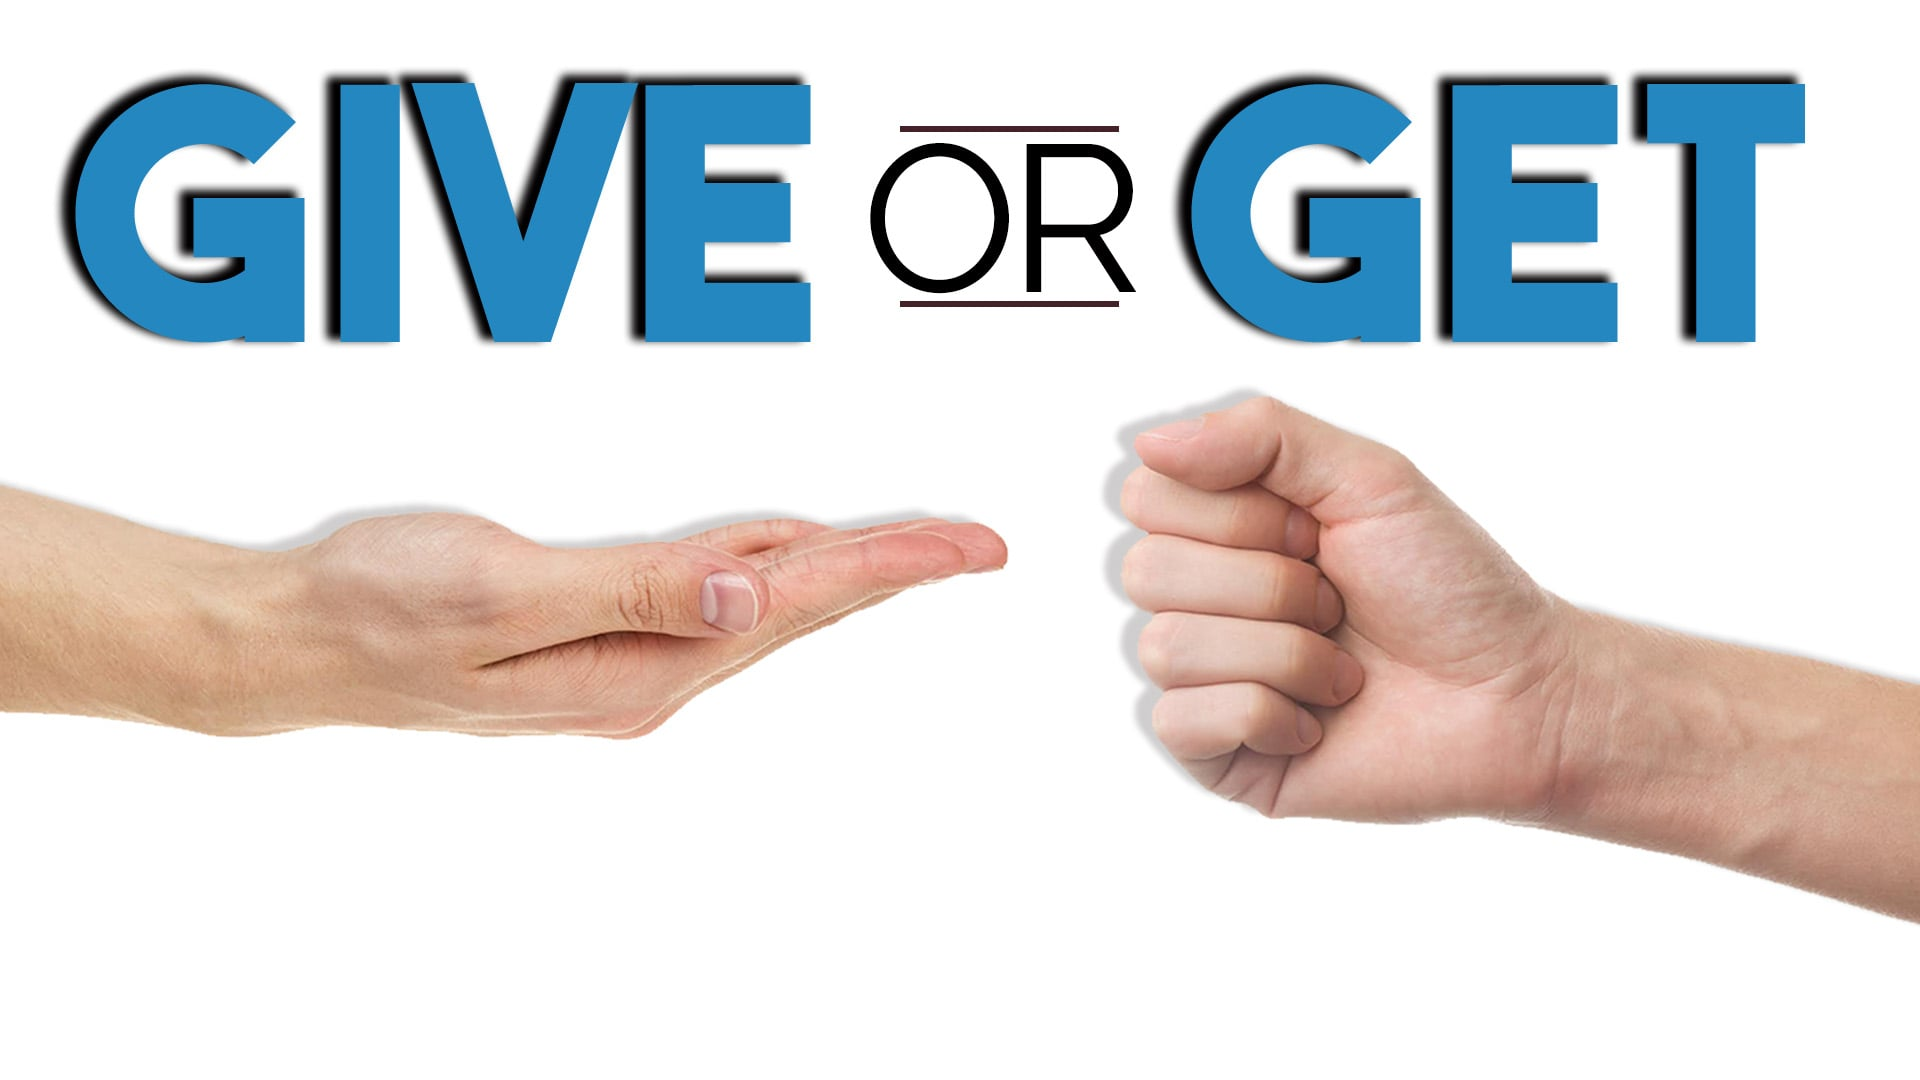 Give Or Get